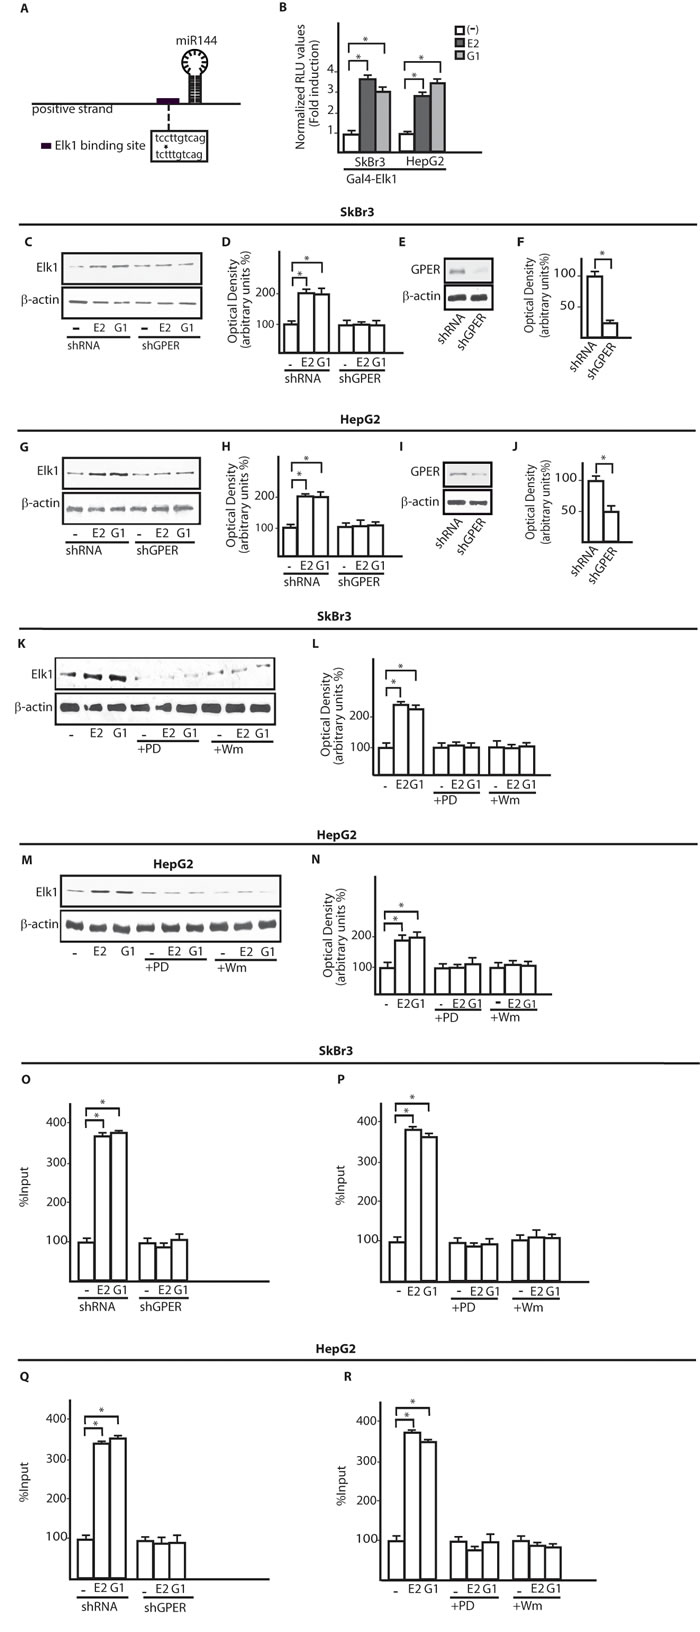 The transcription factor Elk1 is involved in the up-regulation of miR144 by E2 and G-1.